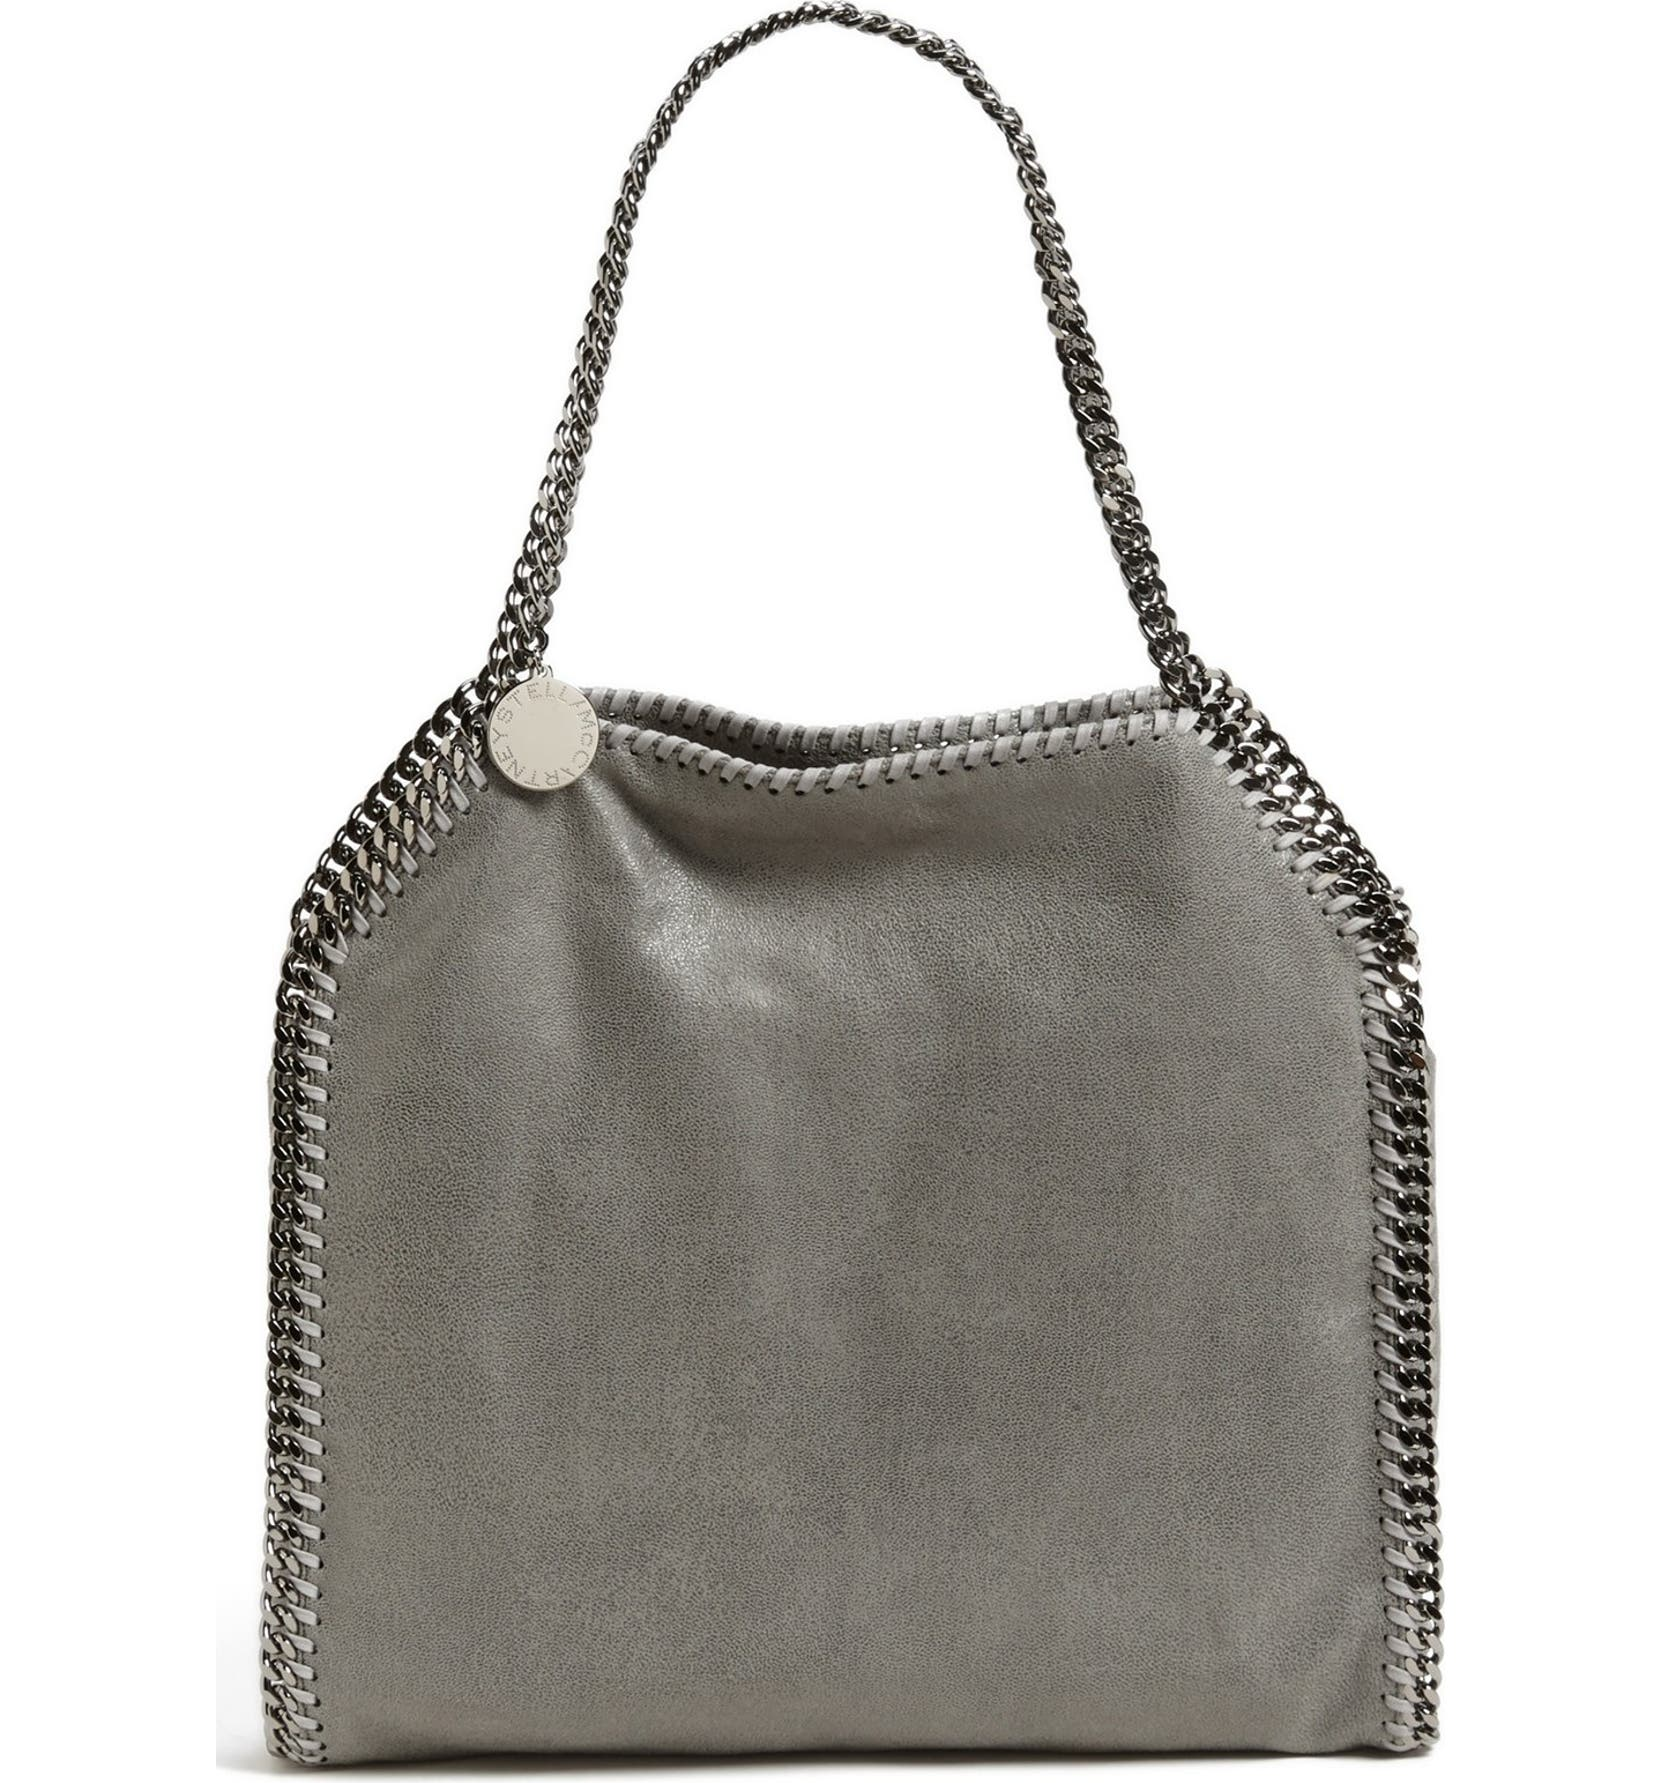 Stella McCartney  Small Falabella - Shaggy Deer  Faux Leather Tote    Nordstrom 647395a817